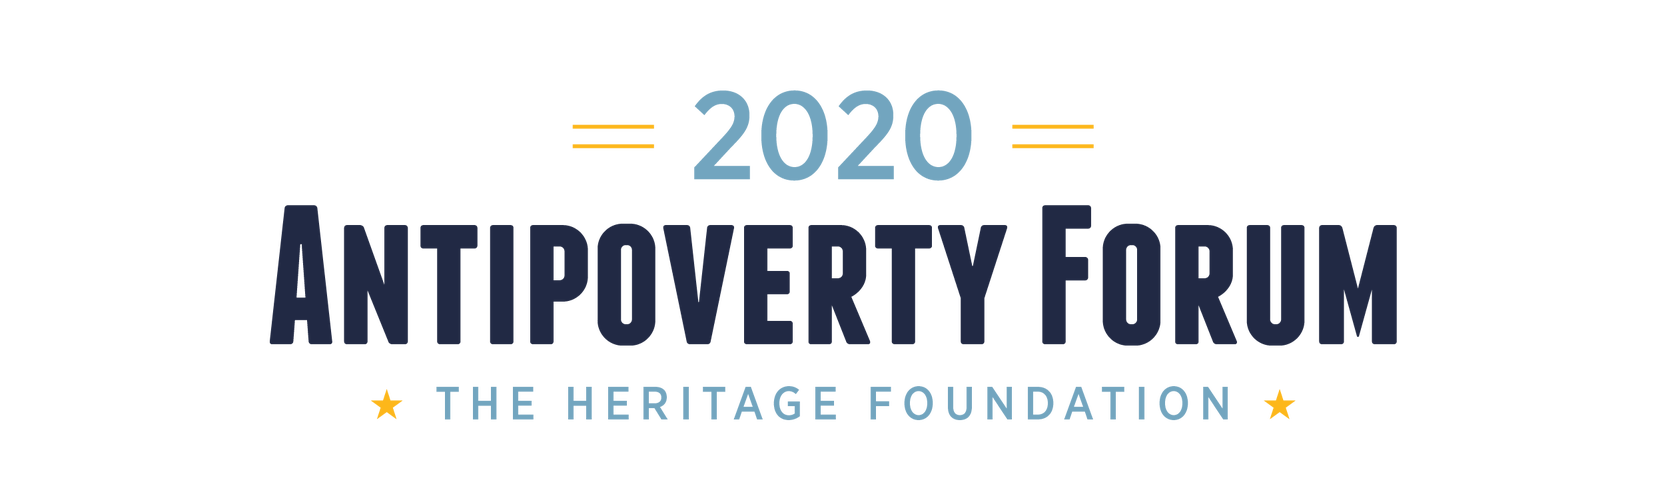 2020 Antipoverty Forum